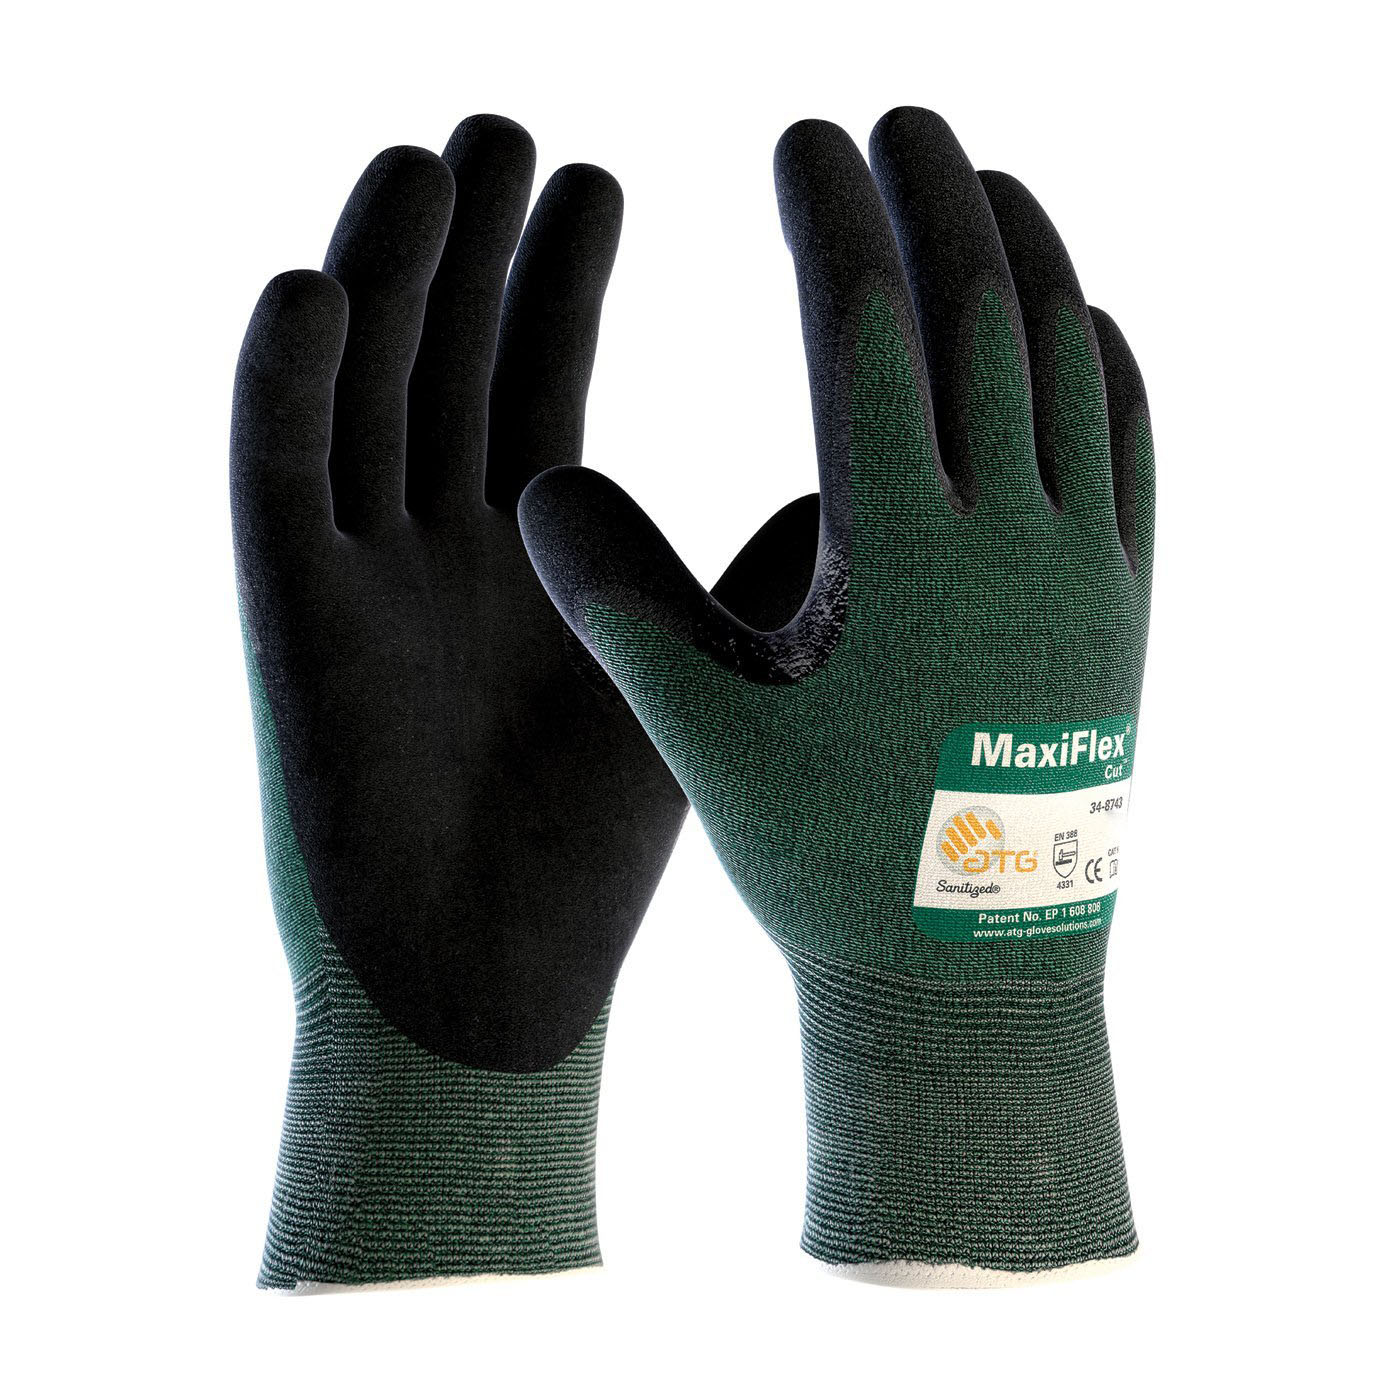 PIP MaxiFlex Cut by ATG Black Micro-Foam Nitrile Dipped Palm And Finger Coated Work Glove, XL, 1 Pair